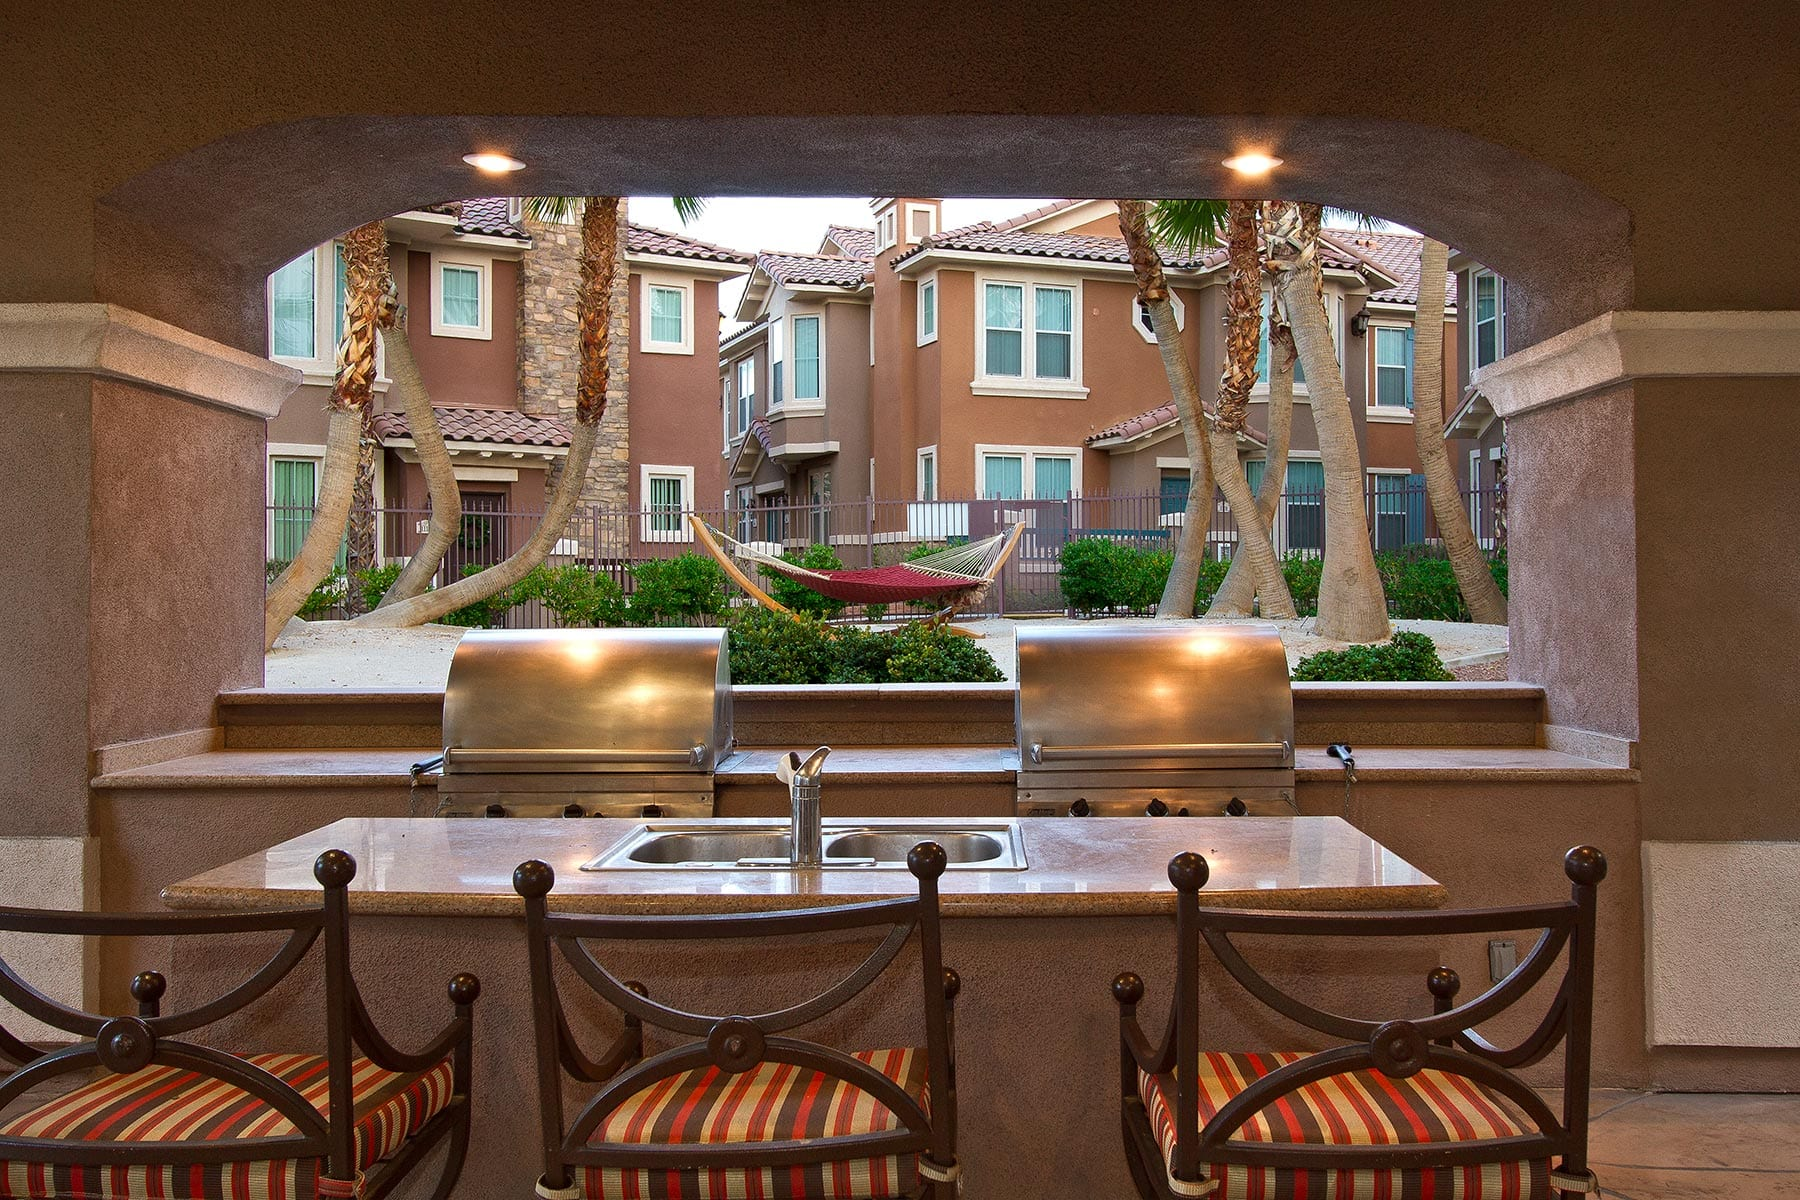 Comfortable high chairs sit in front of a bar top with built-in BBQ grills within a covered outdoor patio.